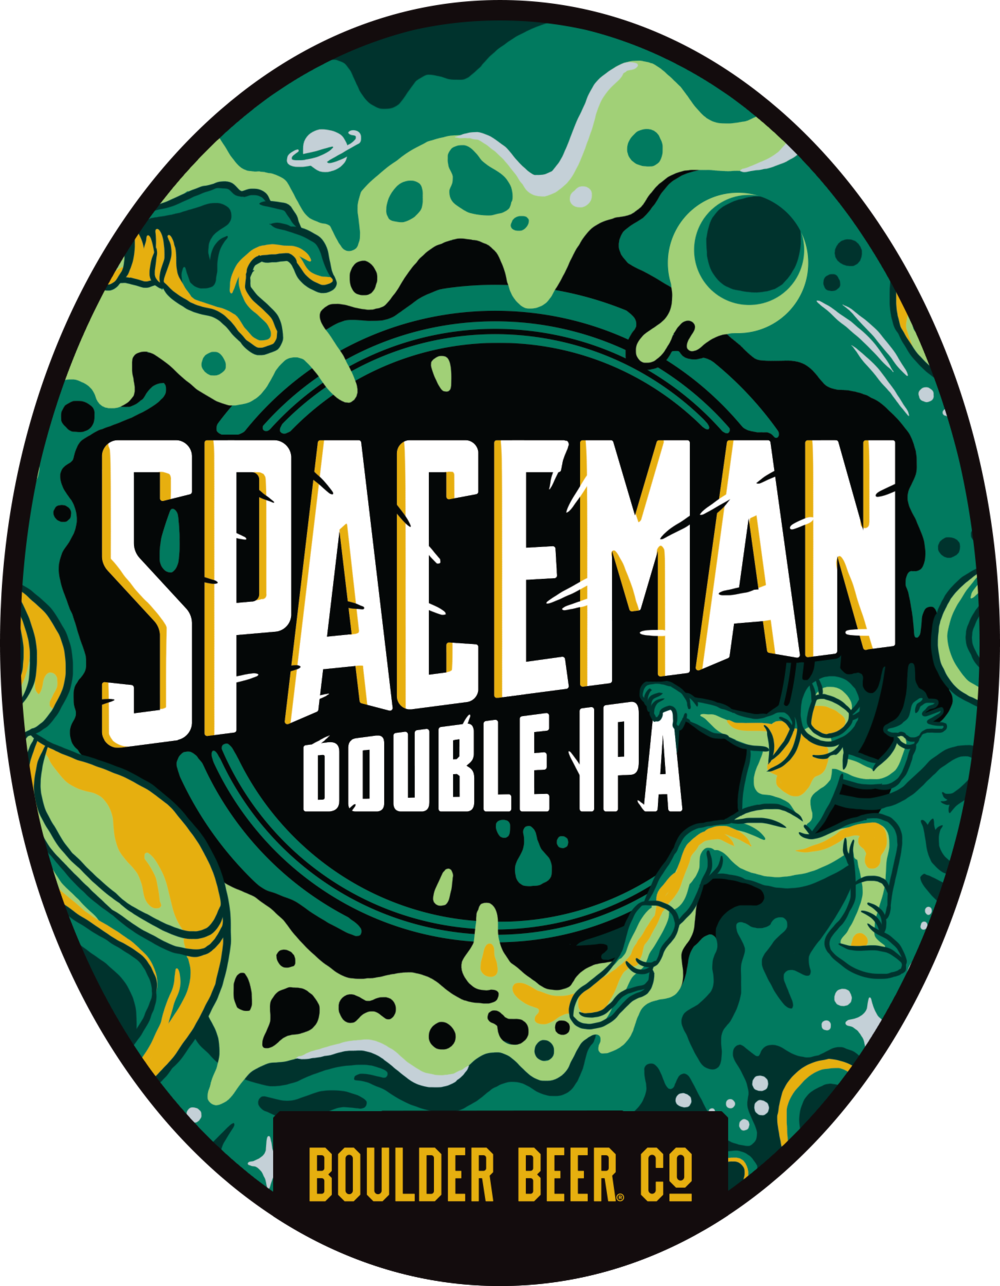 04723-1.3 Boulder Beer Spaceman Oval.png